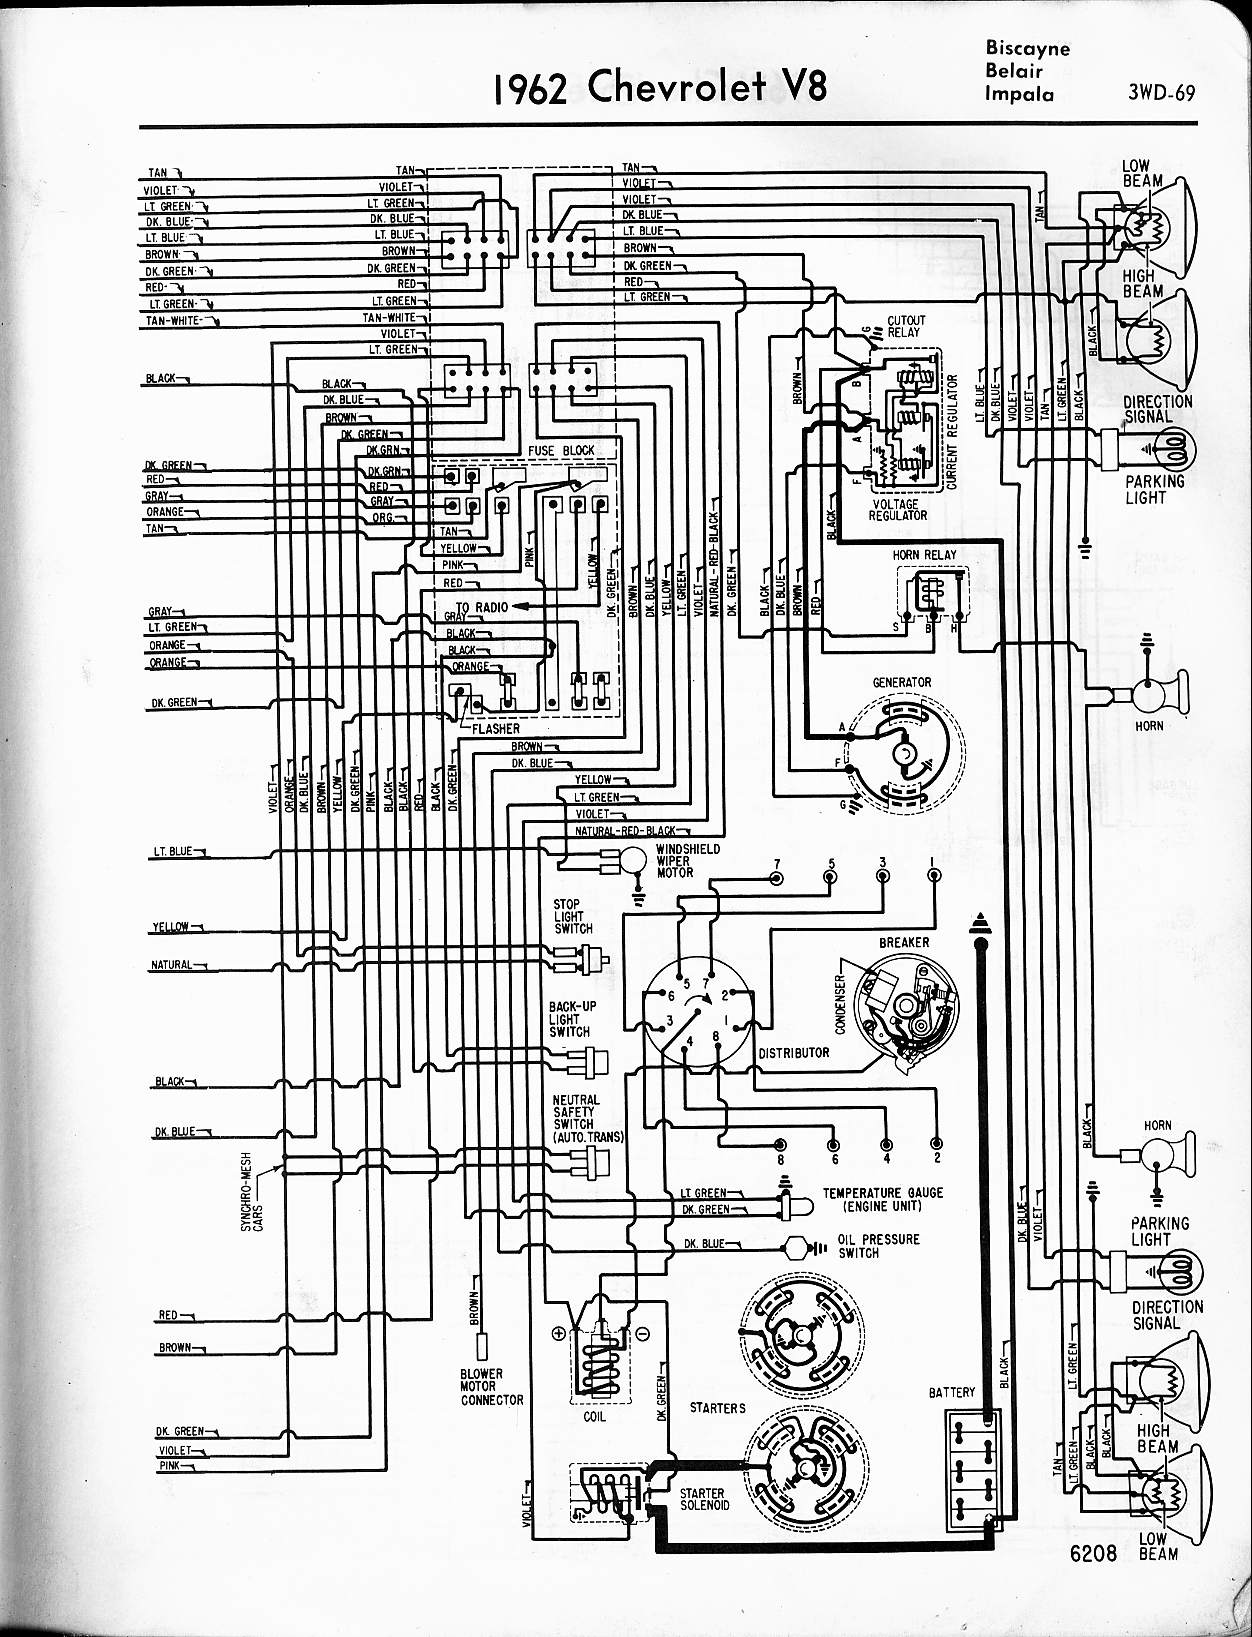 1966 Impala Wagon Wiring Diagram Free For You 66 Chevy Truck Harness Caprice U2022 Rh Evolvedlife Store Ford Tractor Schematic